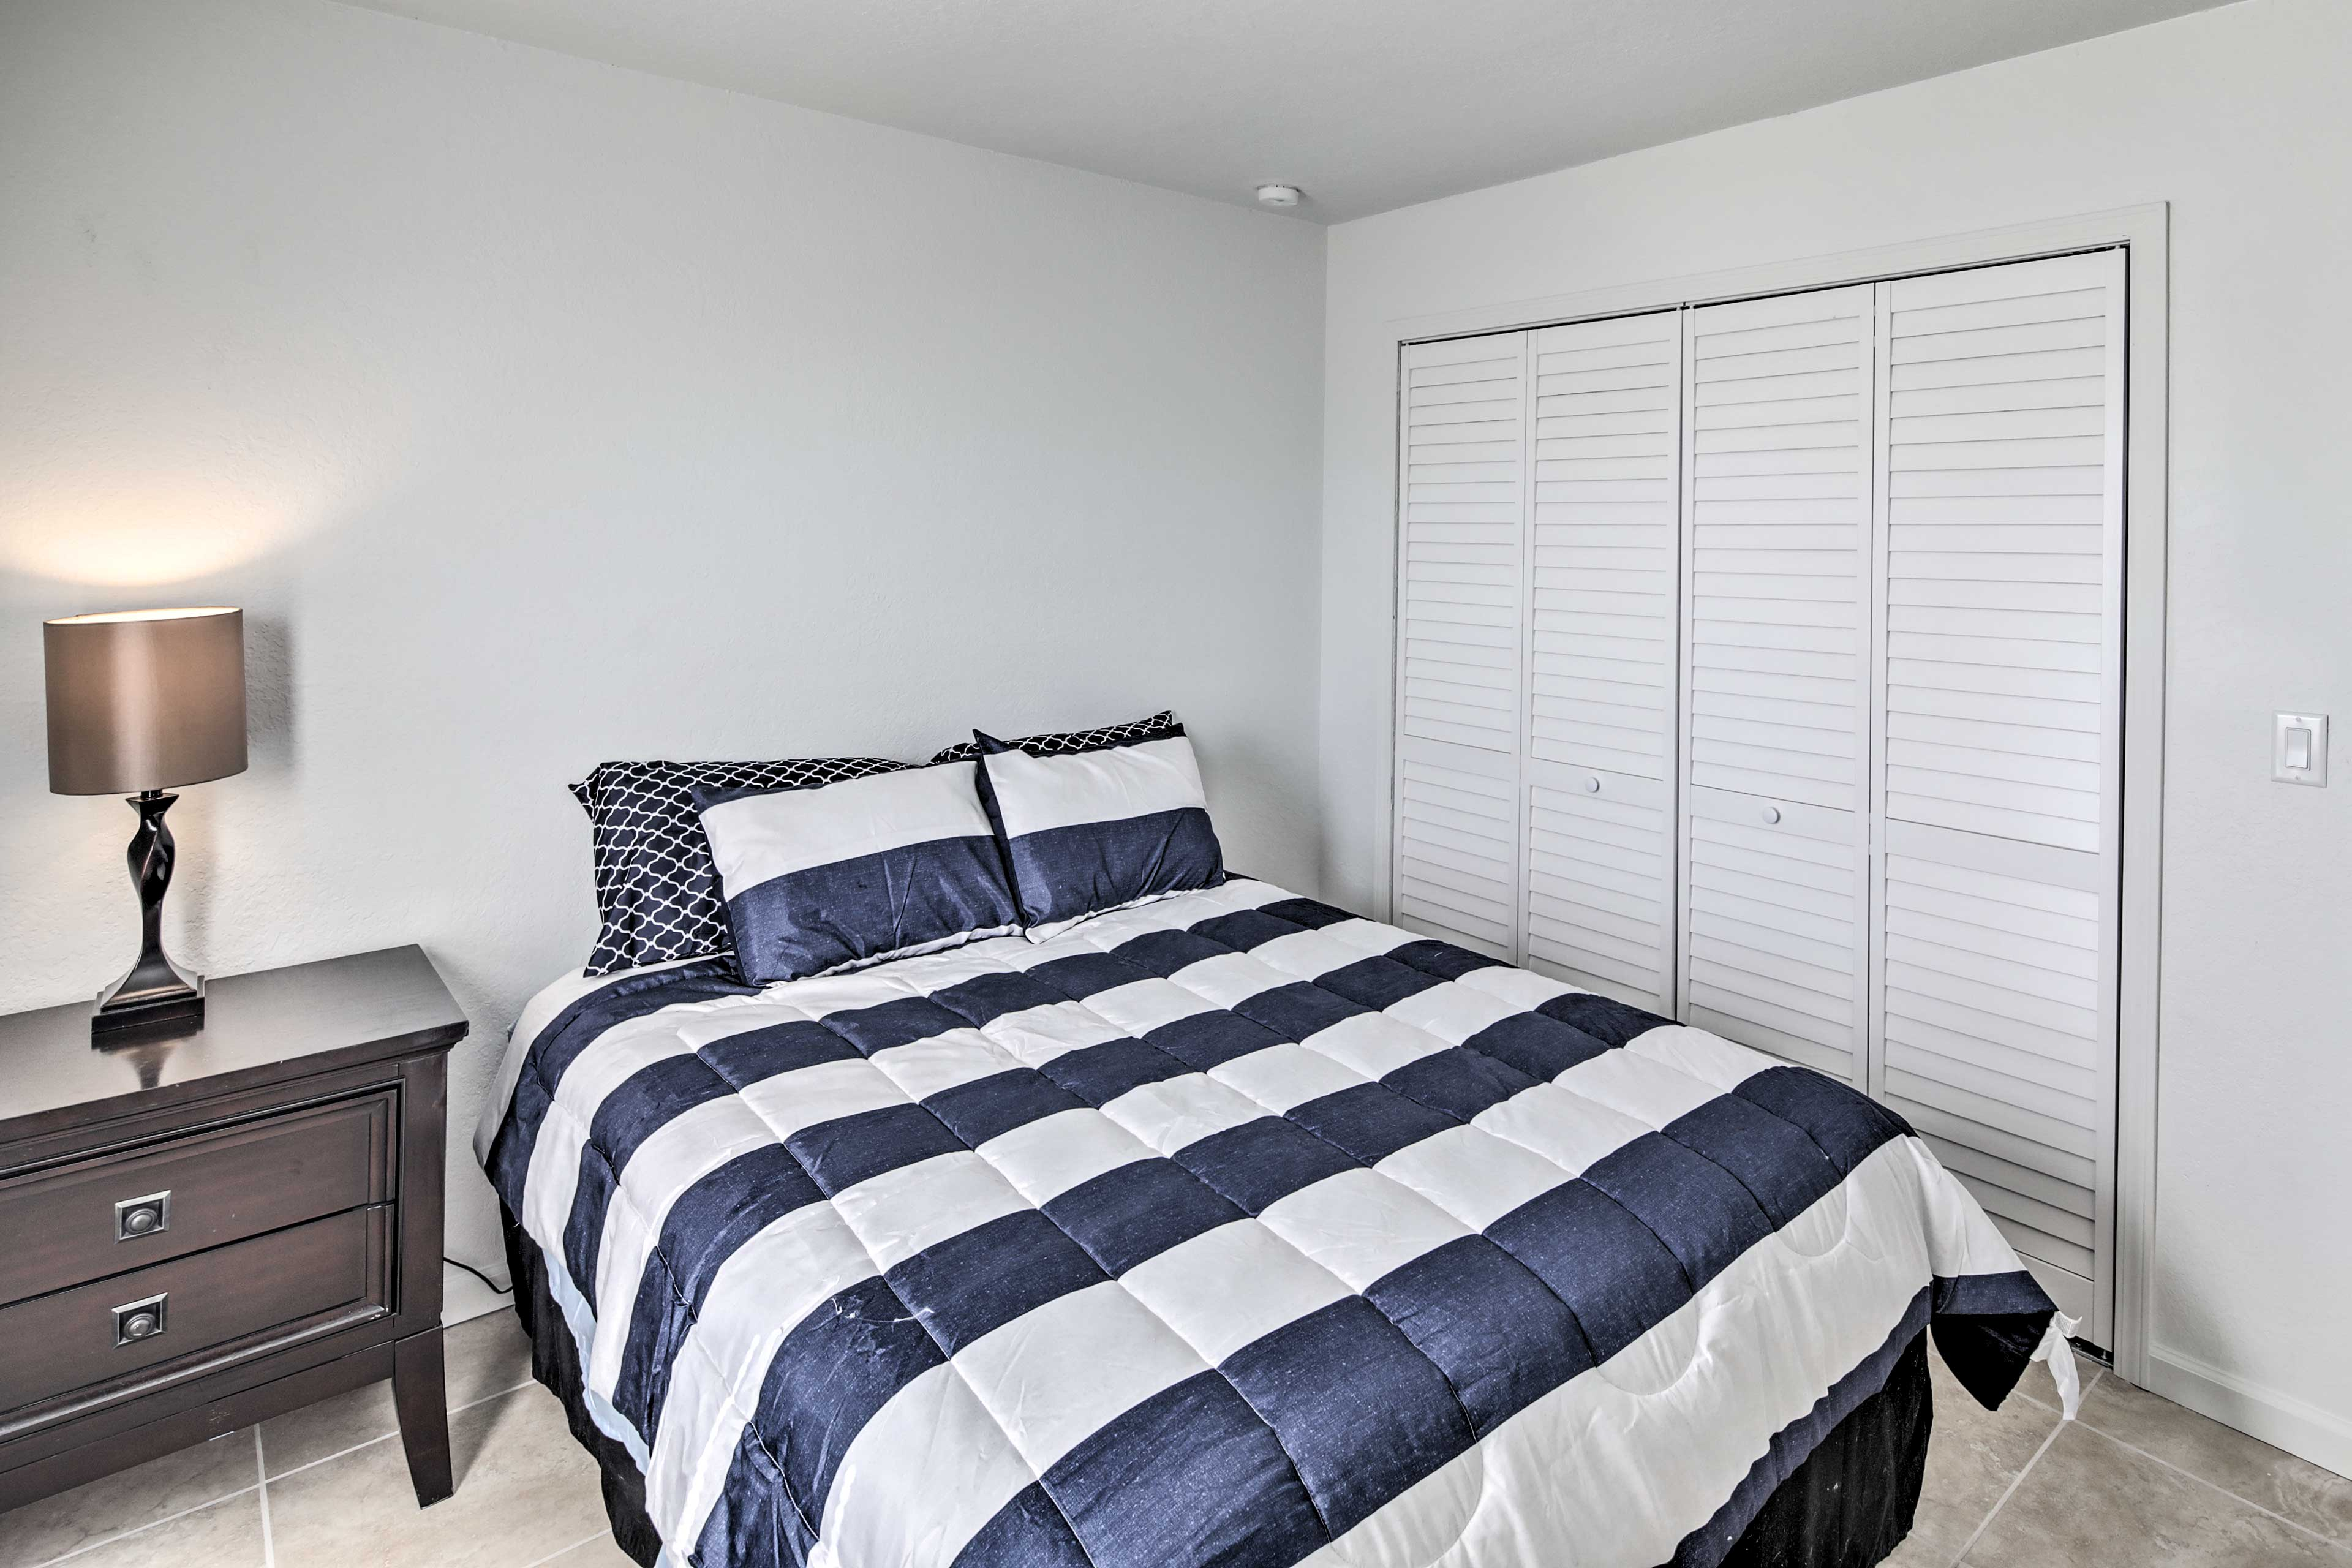 Two guests can sleep in this queen bed.